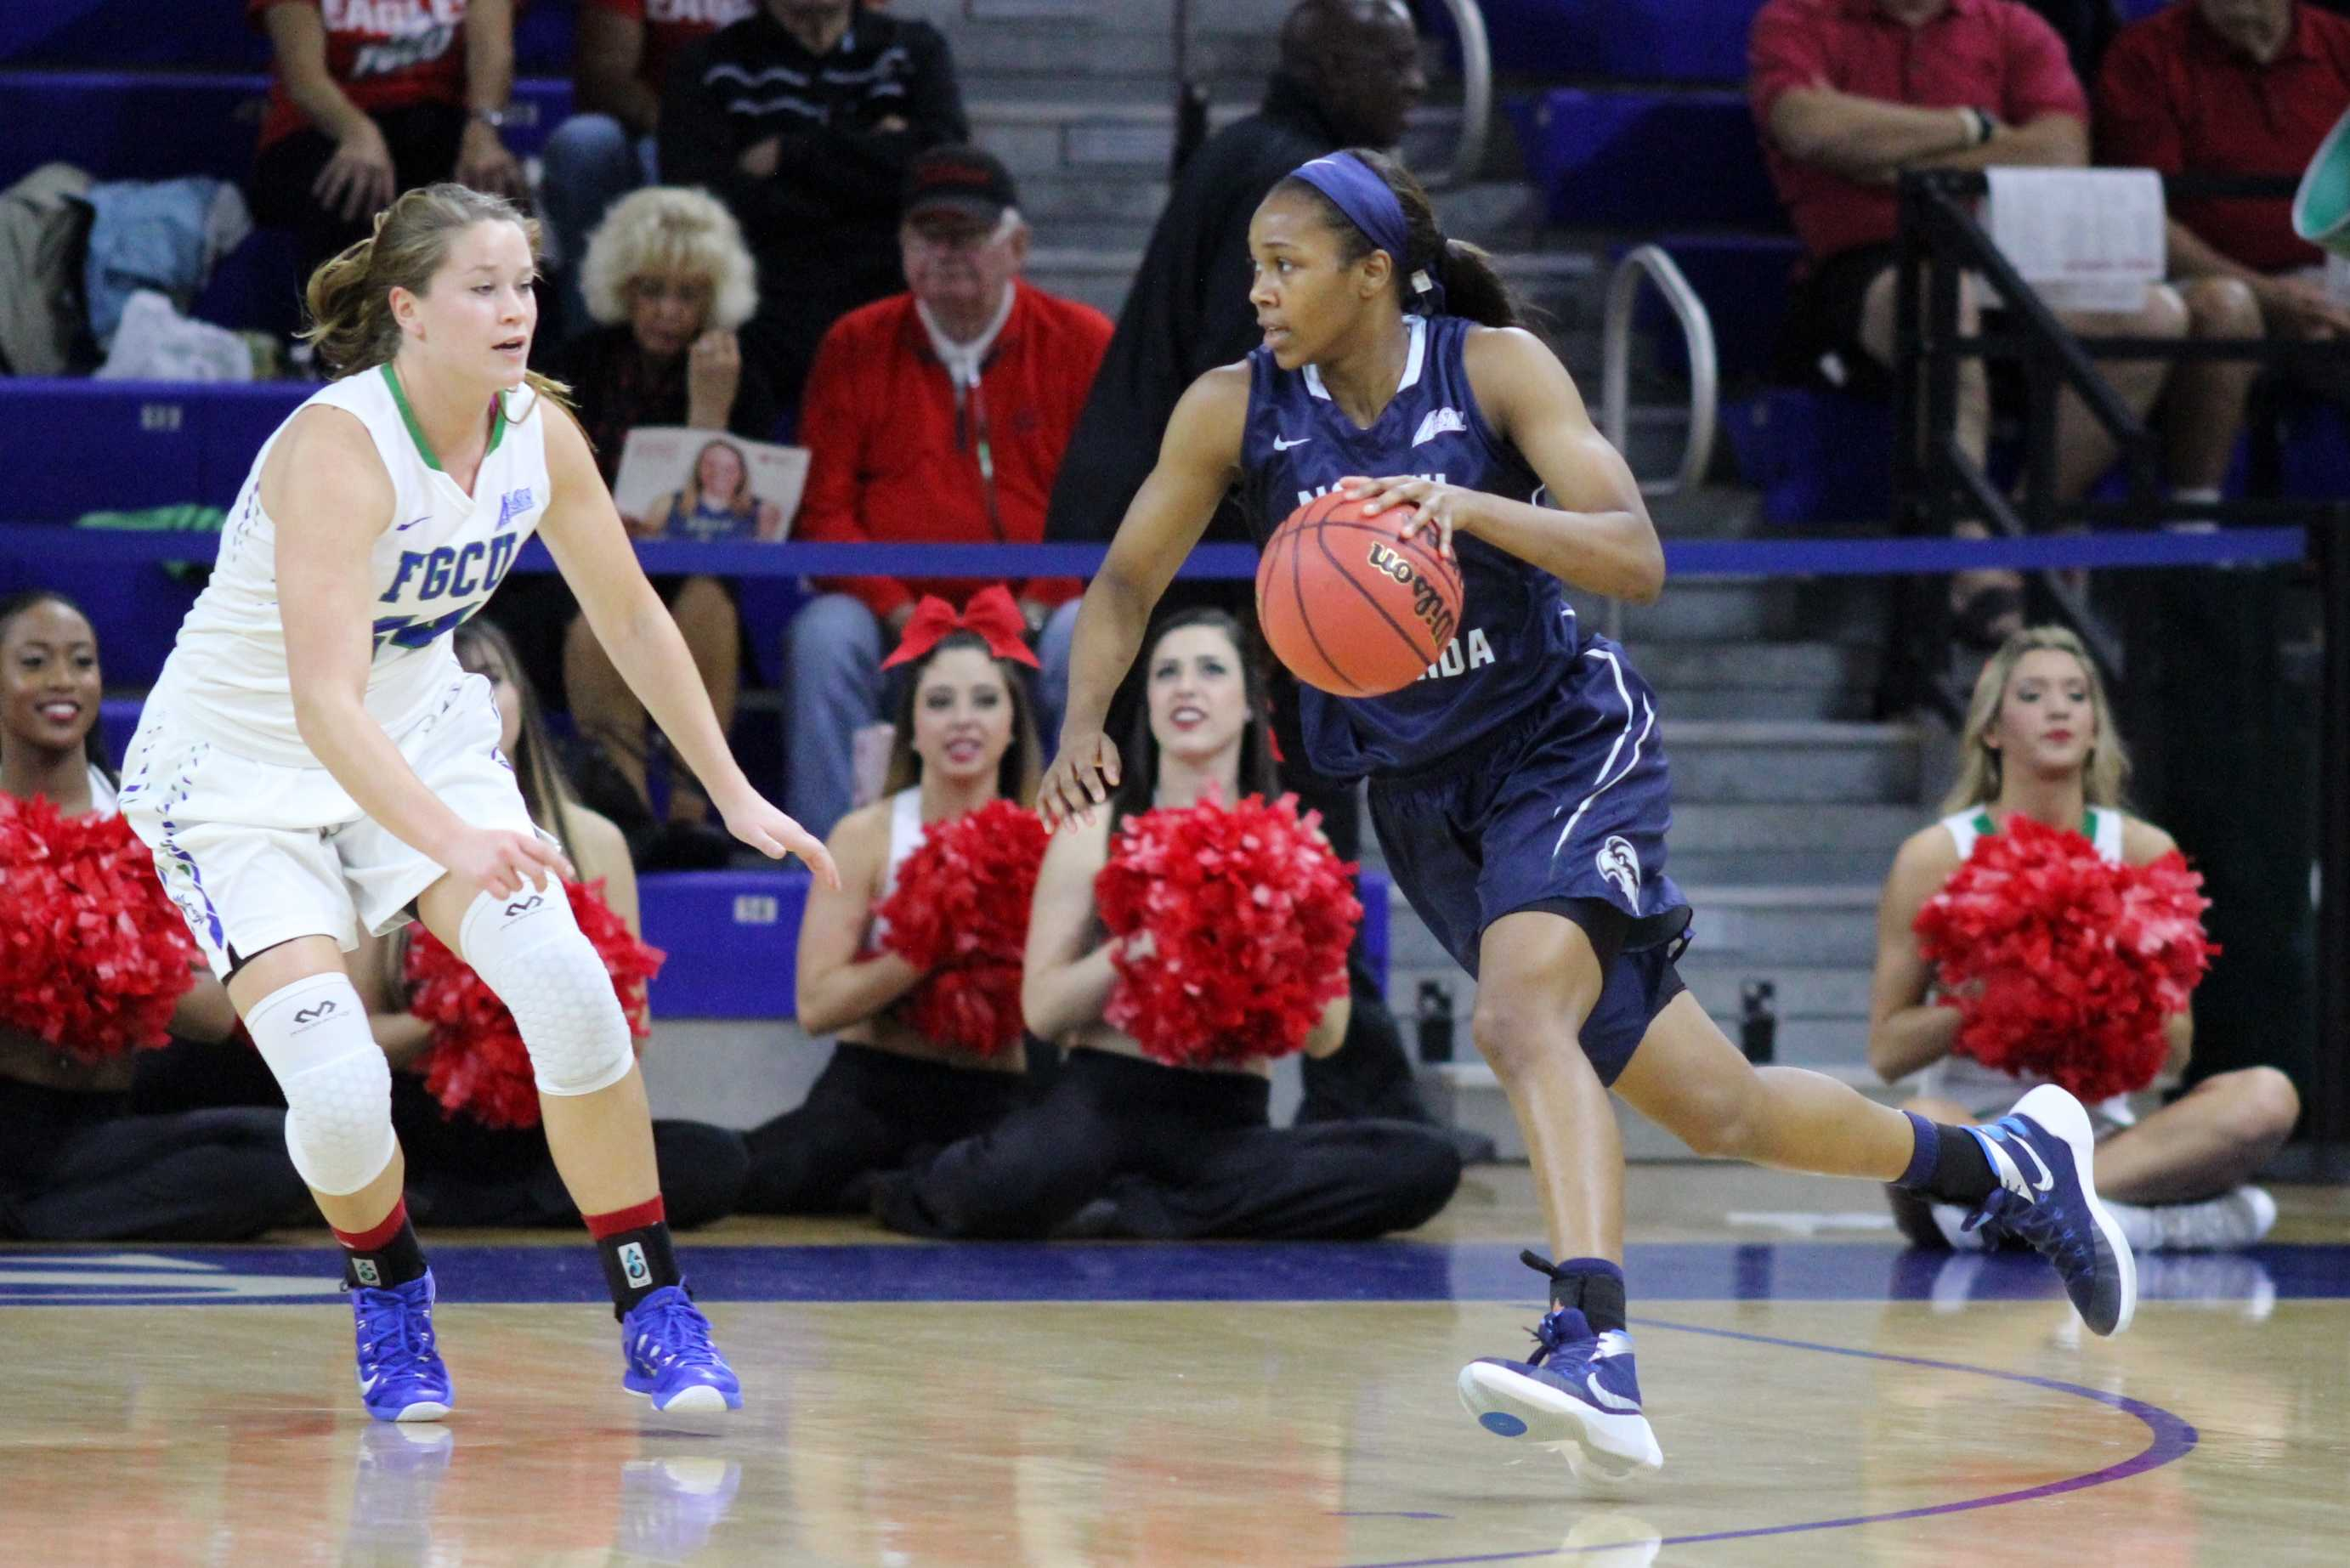 North Florida women's hoops drops fourth straight loss at FGCU 75-50